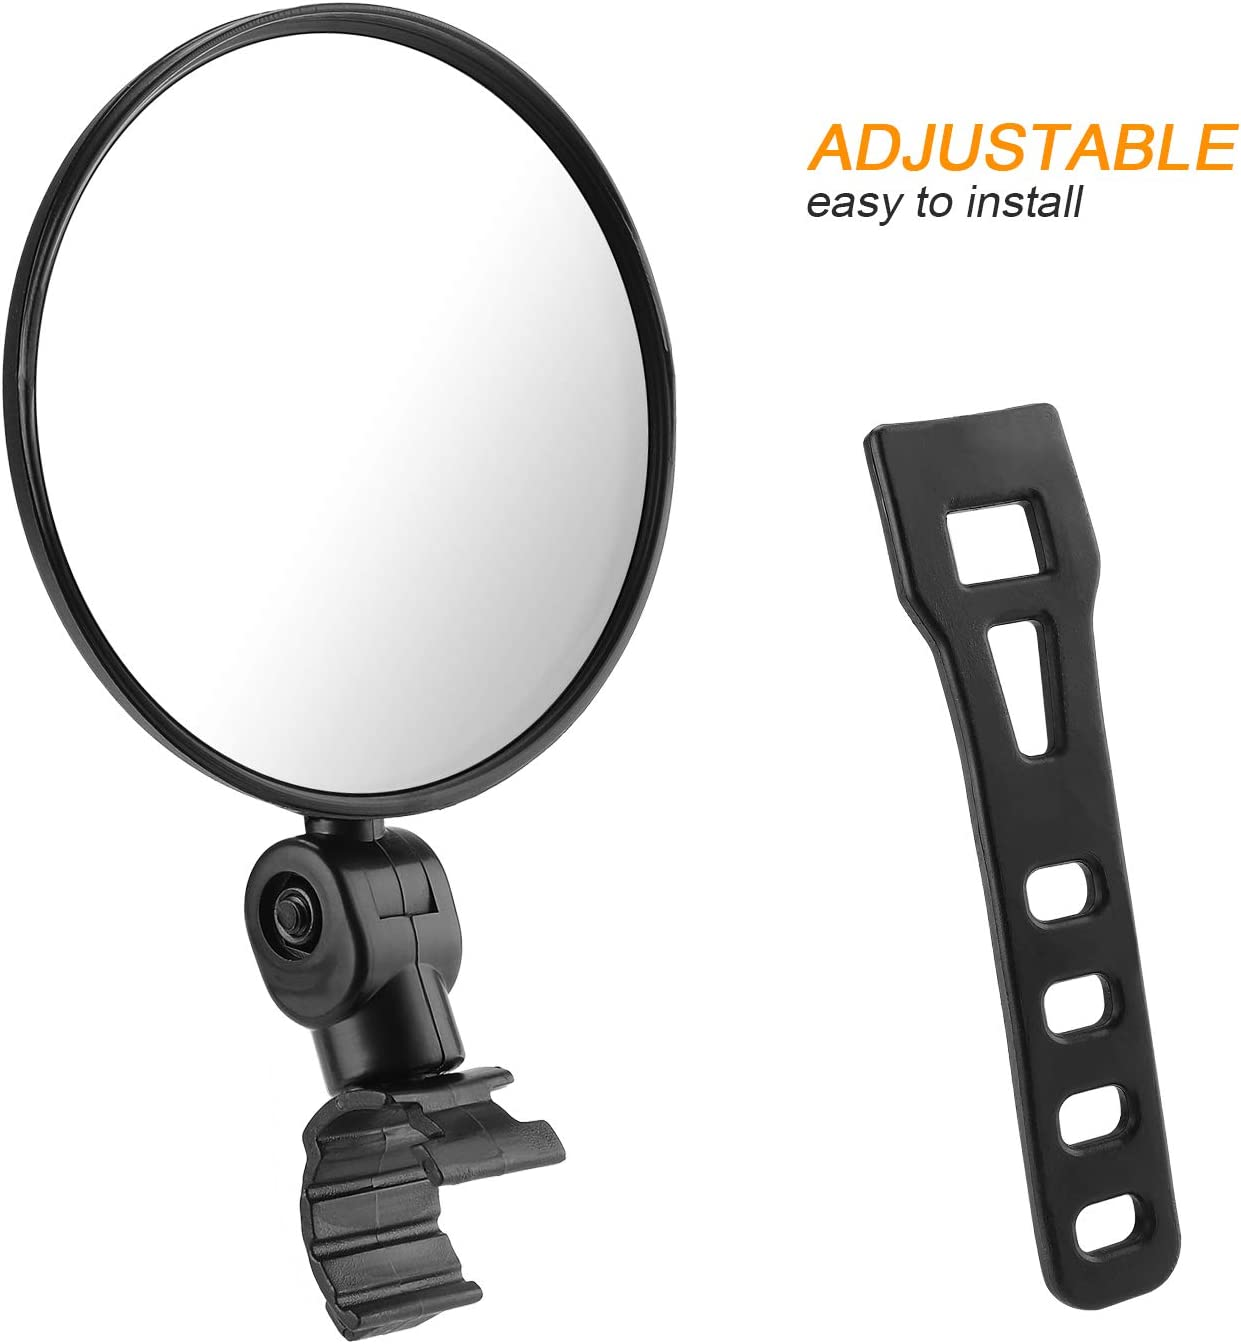 Mountain Bicycle Rear View Mirrors 360 Dregree Rotatable Adjustable Handlebar Mounted Plastic Convex Mirror for Mountain Road Bike Cycling TAGVO 2 Pack Bar End Bike Mirrors